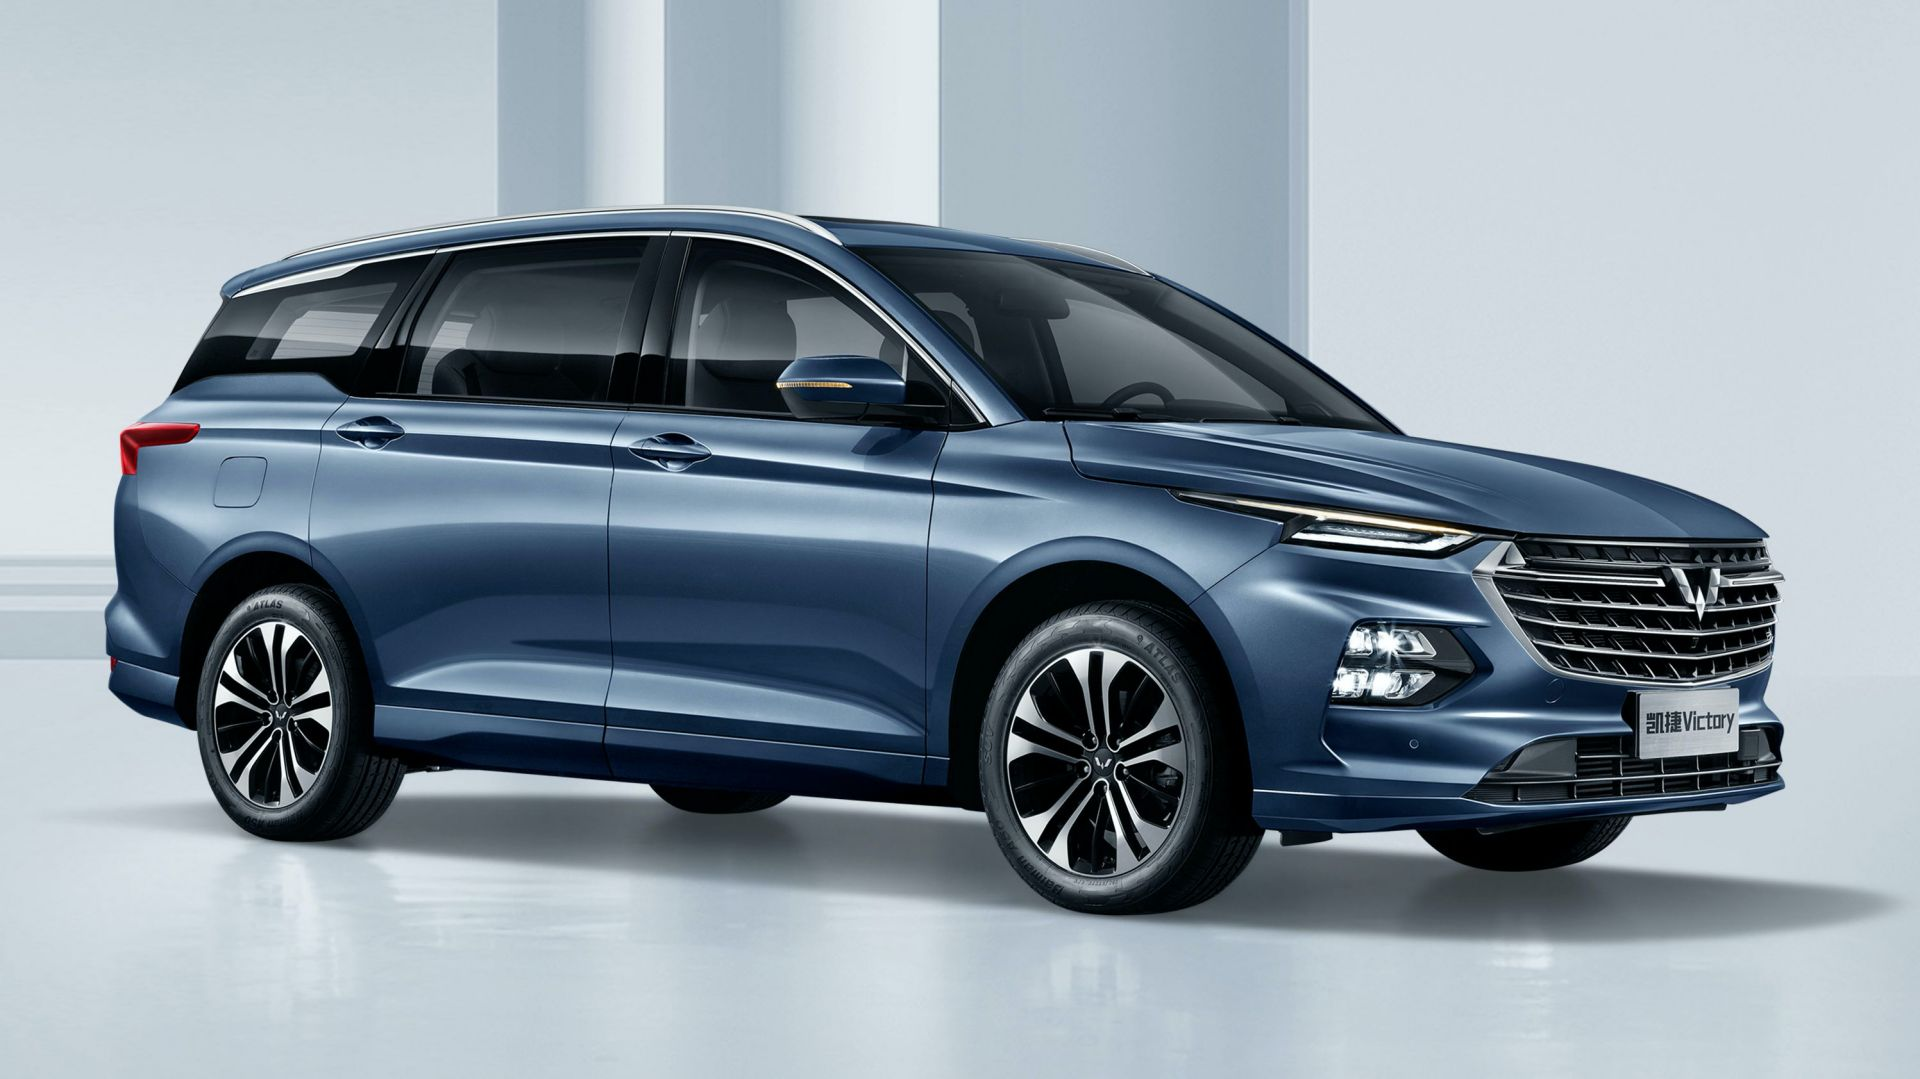 2021_Wuling_Victory_0002